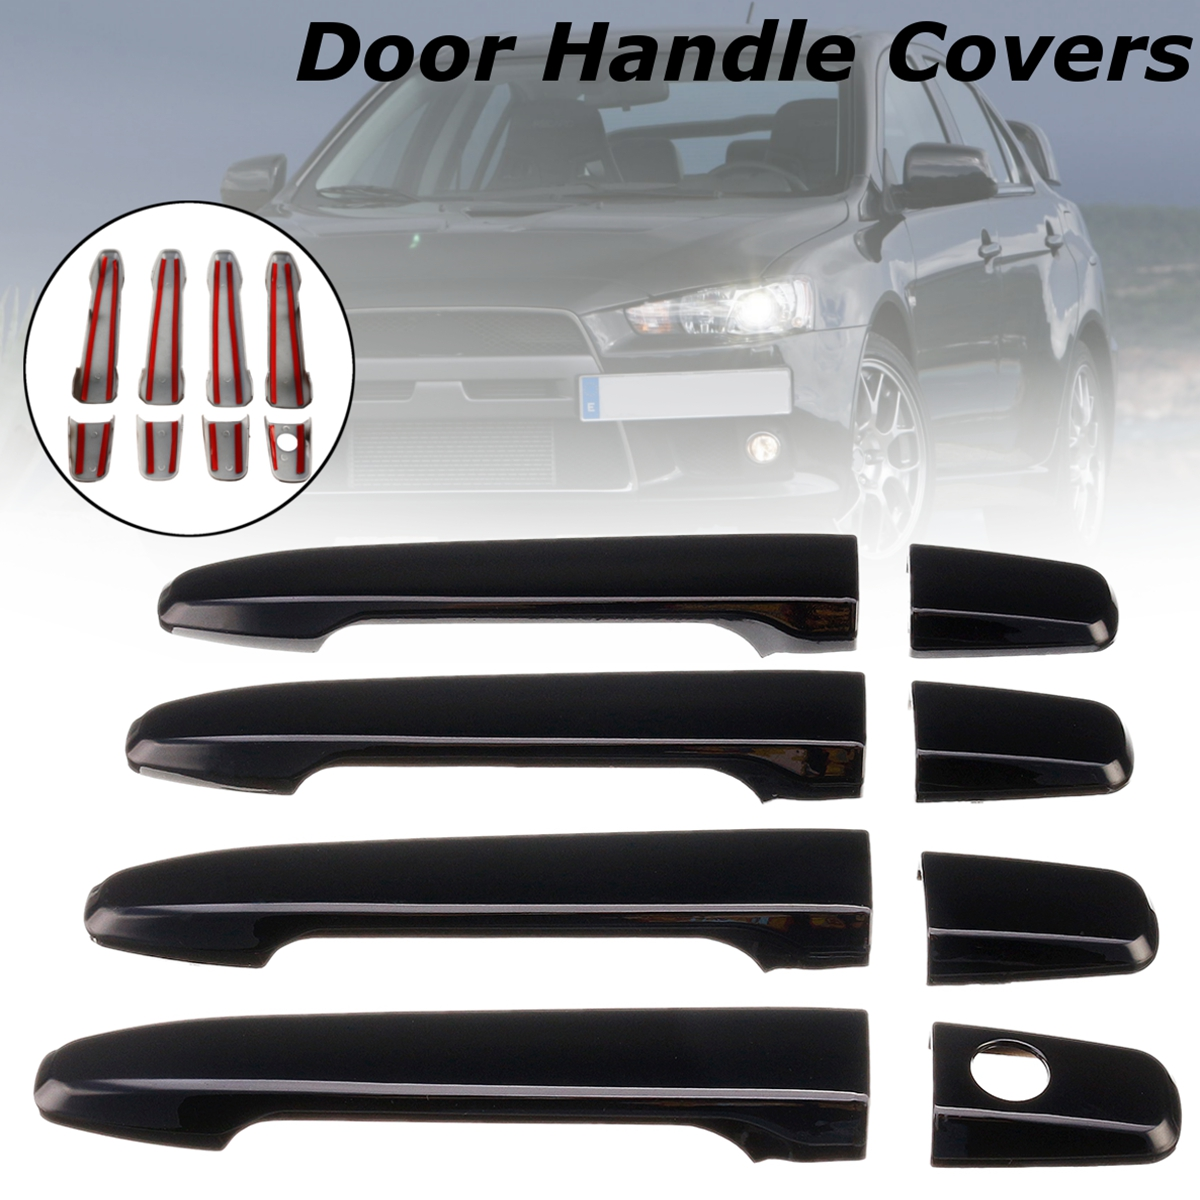 8pcs Set ABS Gloss Black 4 <font><b>Door</b></font> <font><b>Handle</b></font> Covers For <font><b>Mitsubishi</b></font> Lancer 2008 2009 2010 2011 2012 2013 2014 2015 2016 2017 image